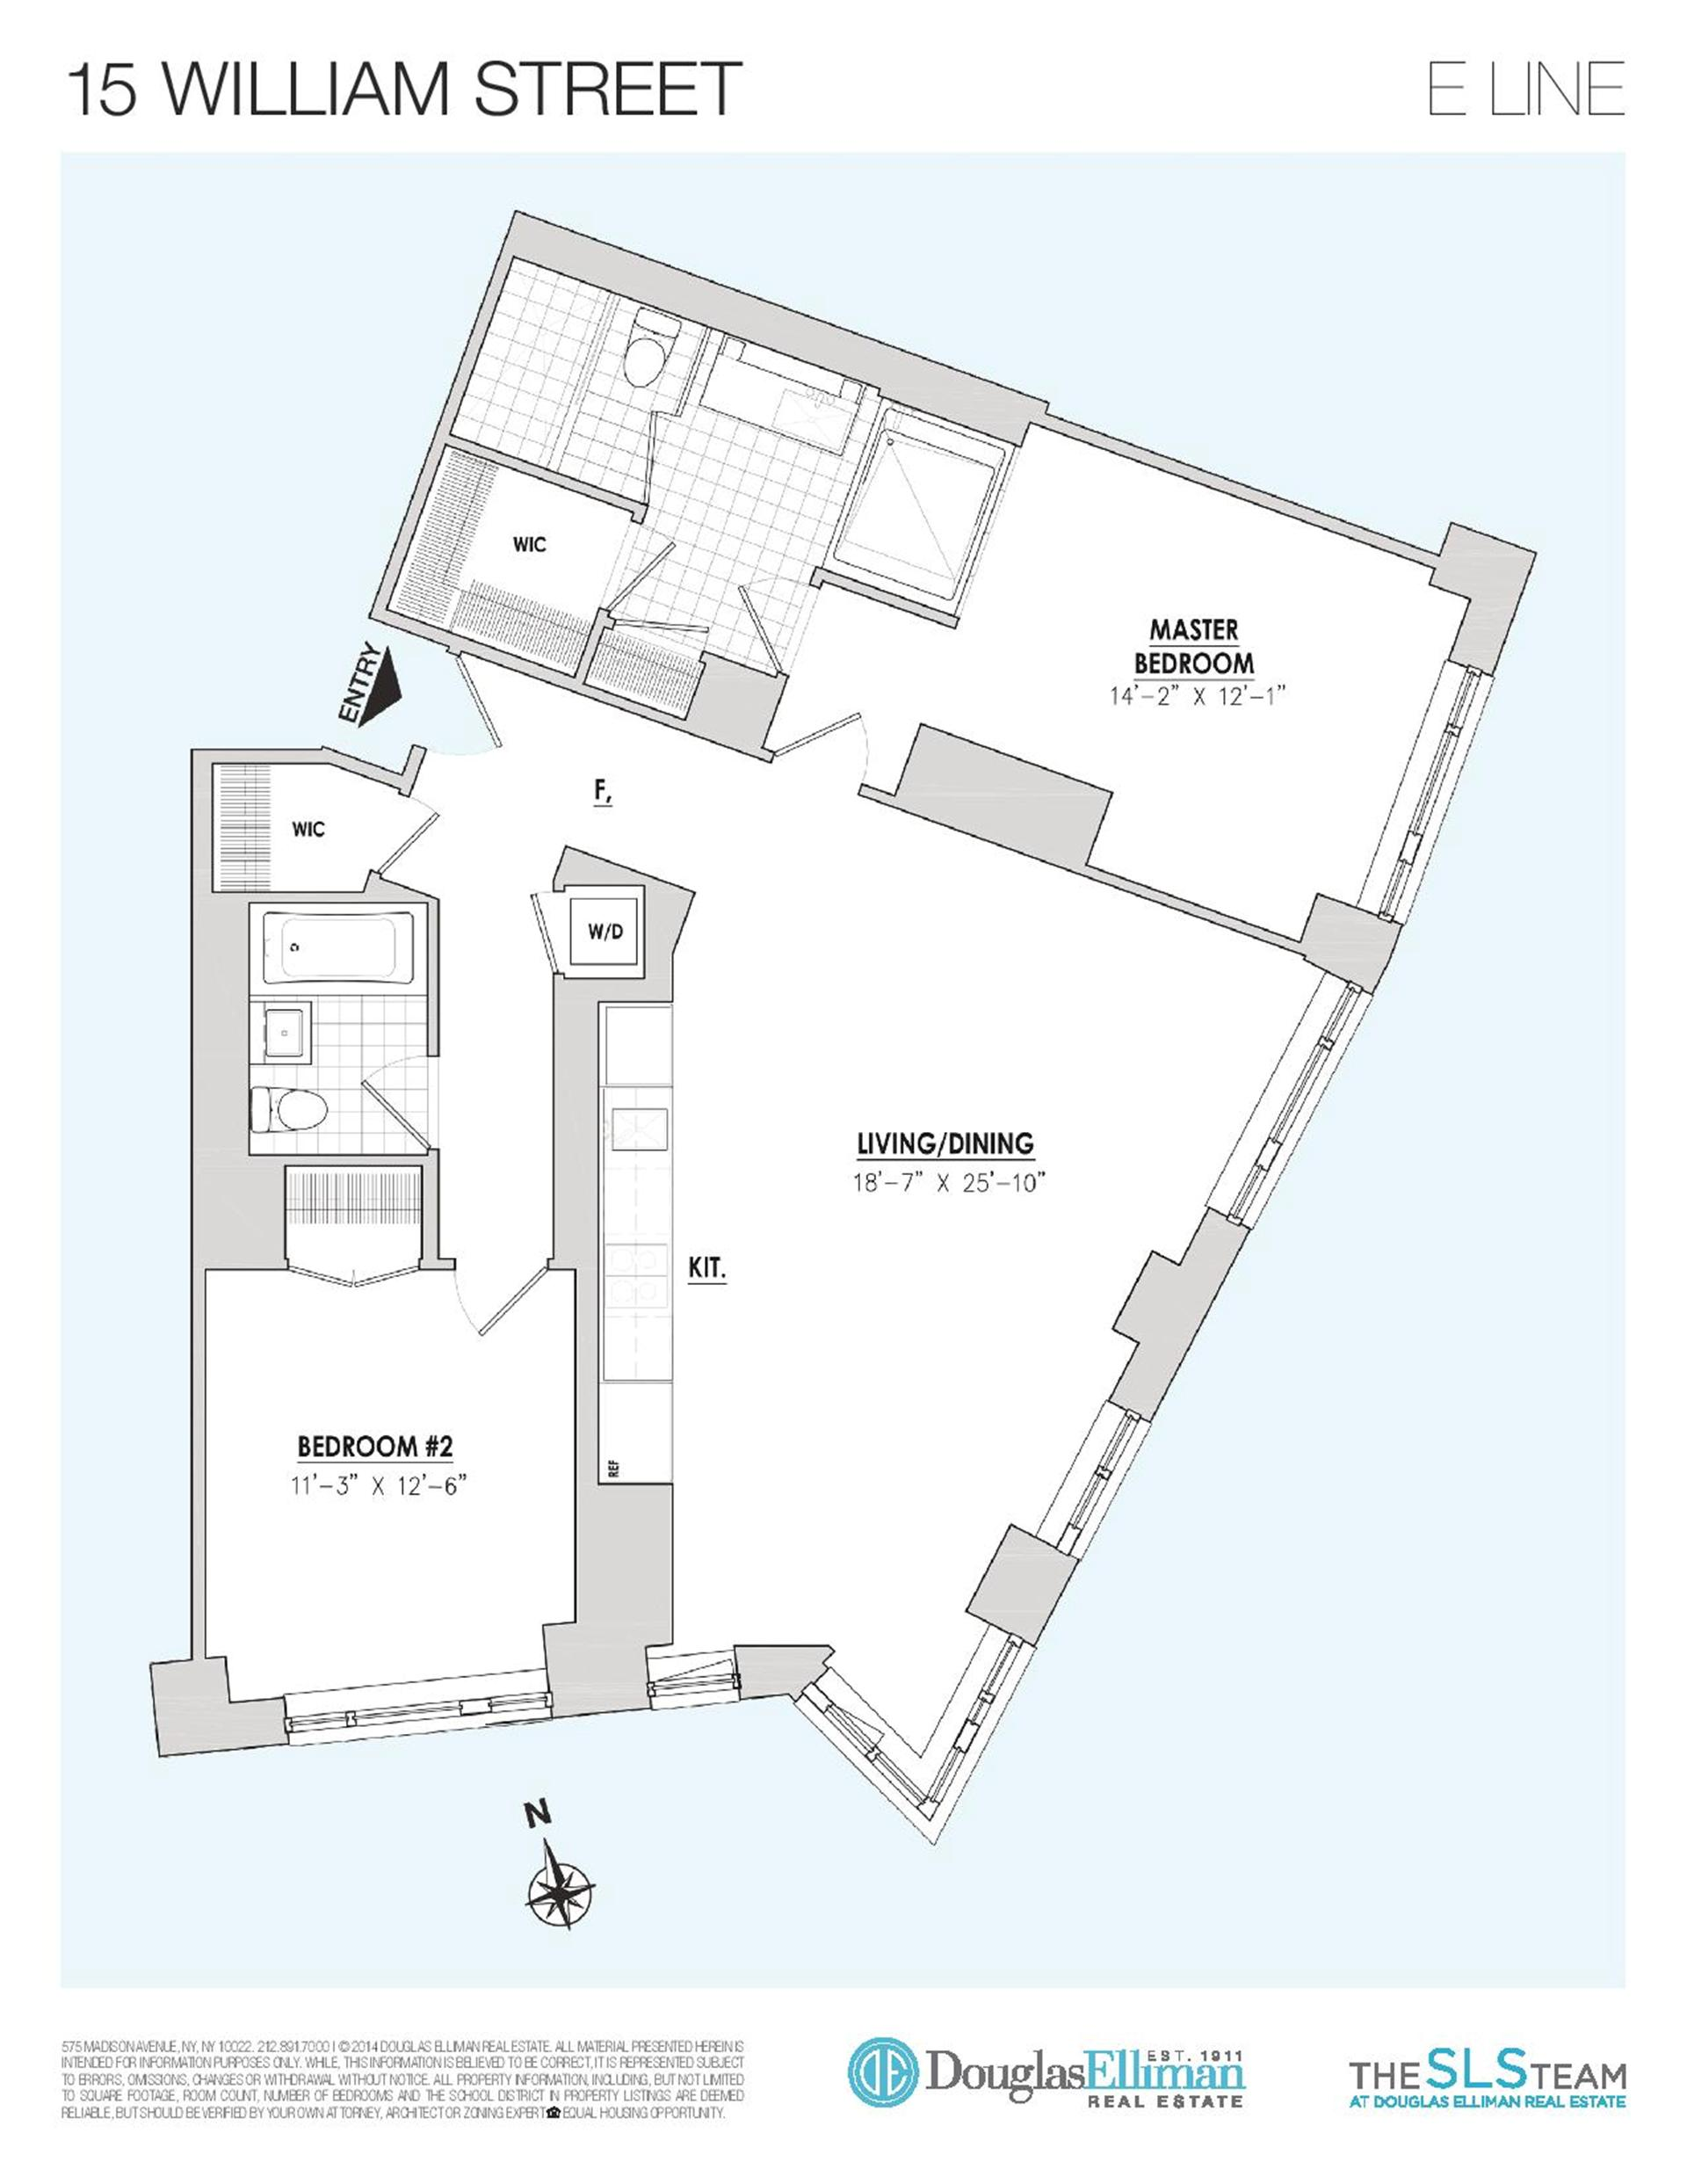 Floor plan of 15 William, 15 William St, 30E - Financial District, New York